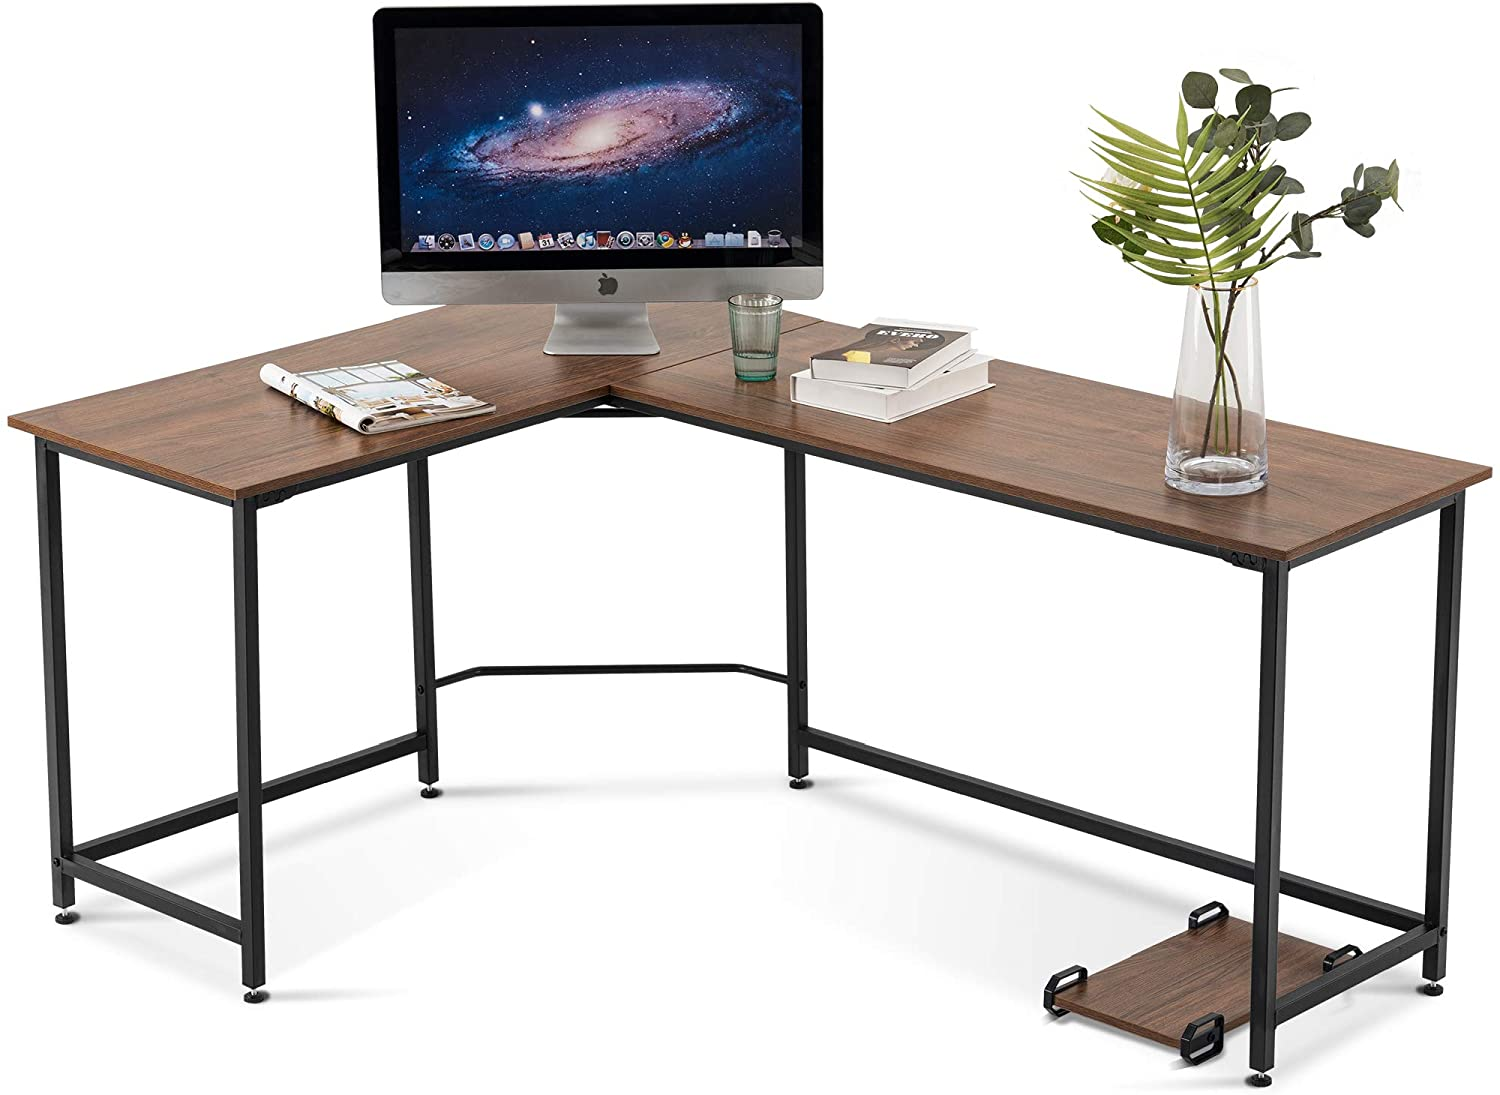 L Shaped Desk Corner Desk Gaming Desk PC Table Writing Workstation Simplest Modern Computer Desk for Home Office Small Space 6400